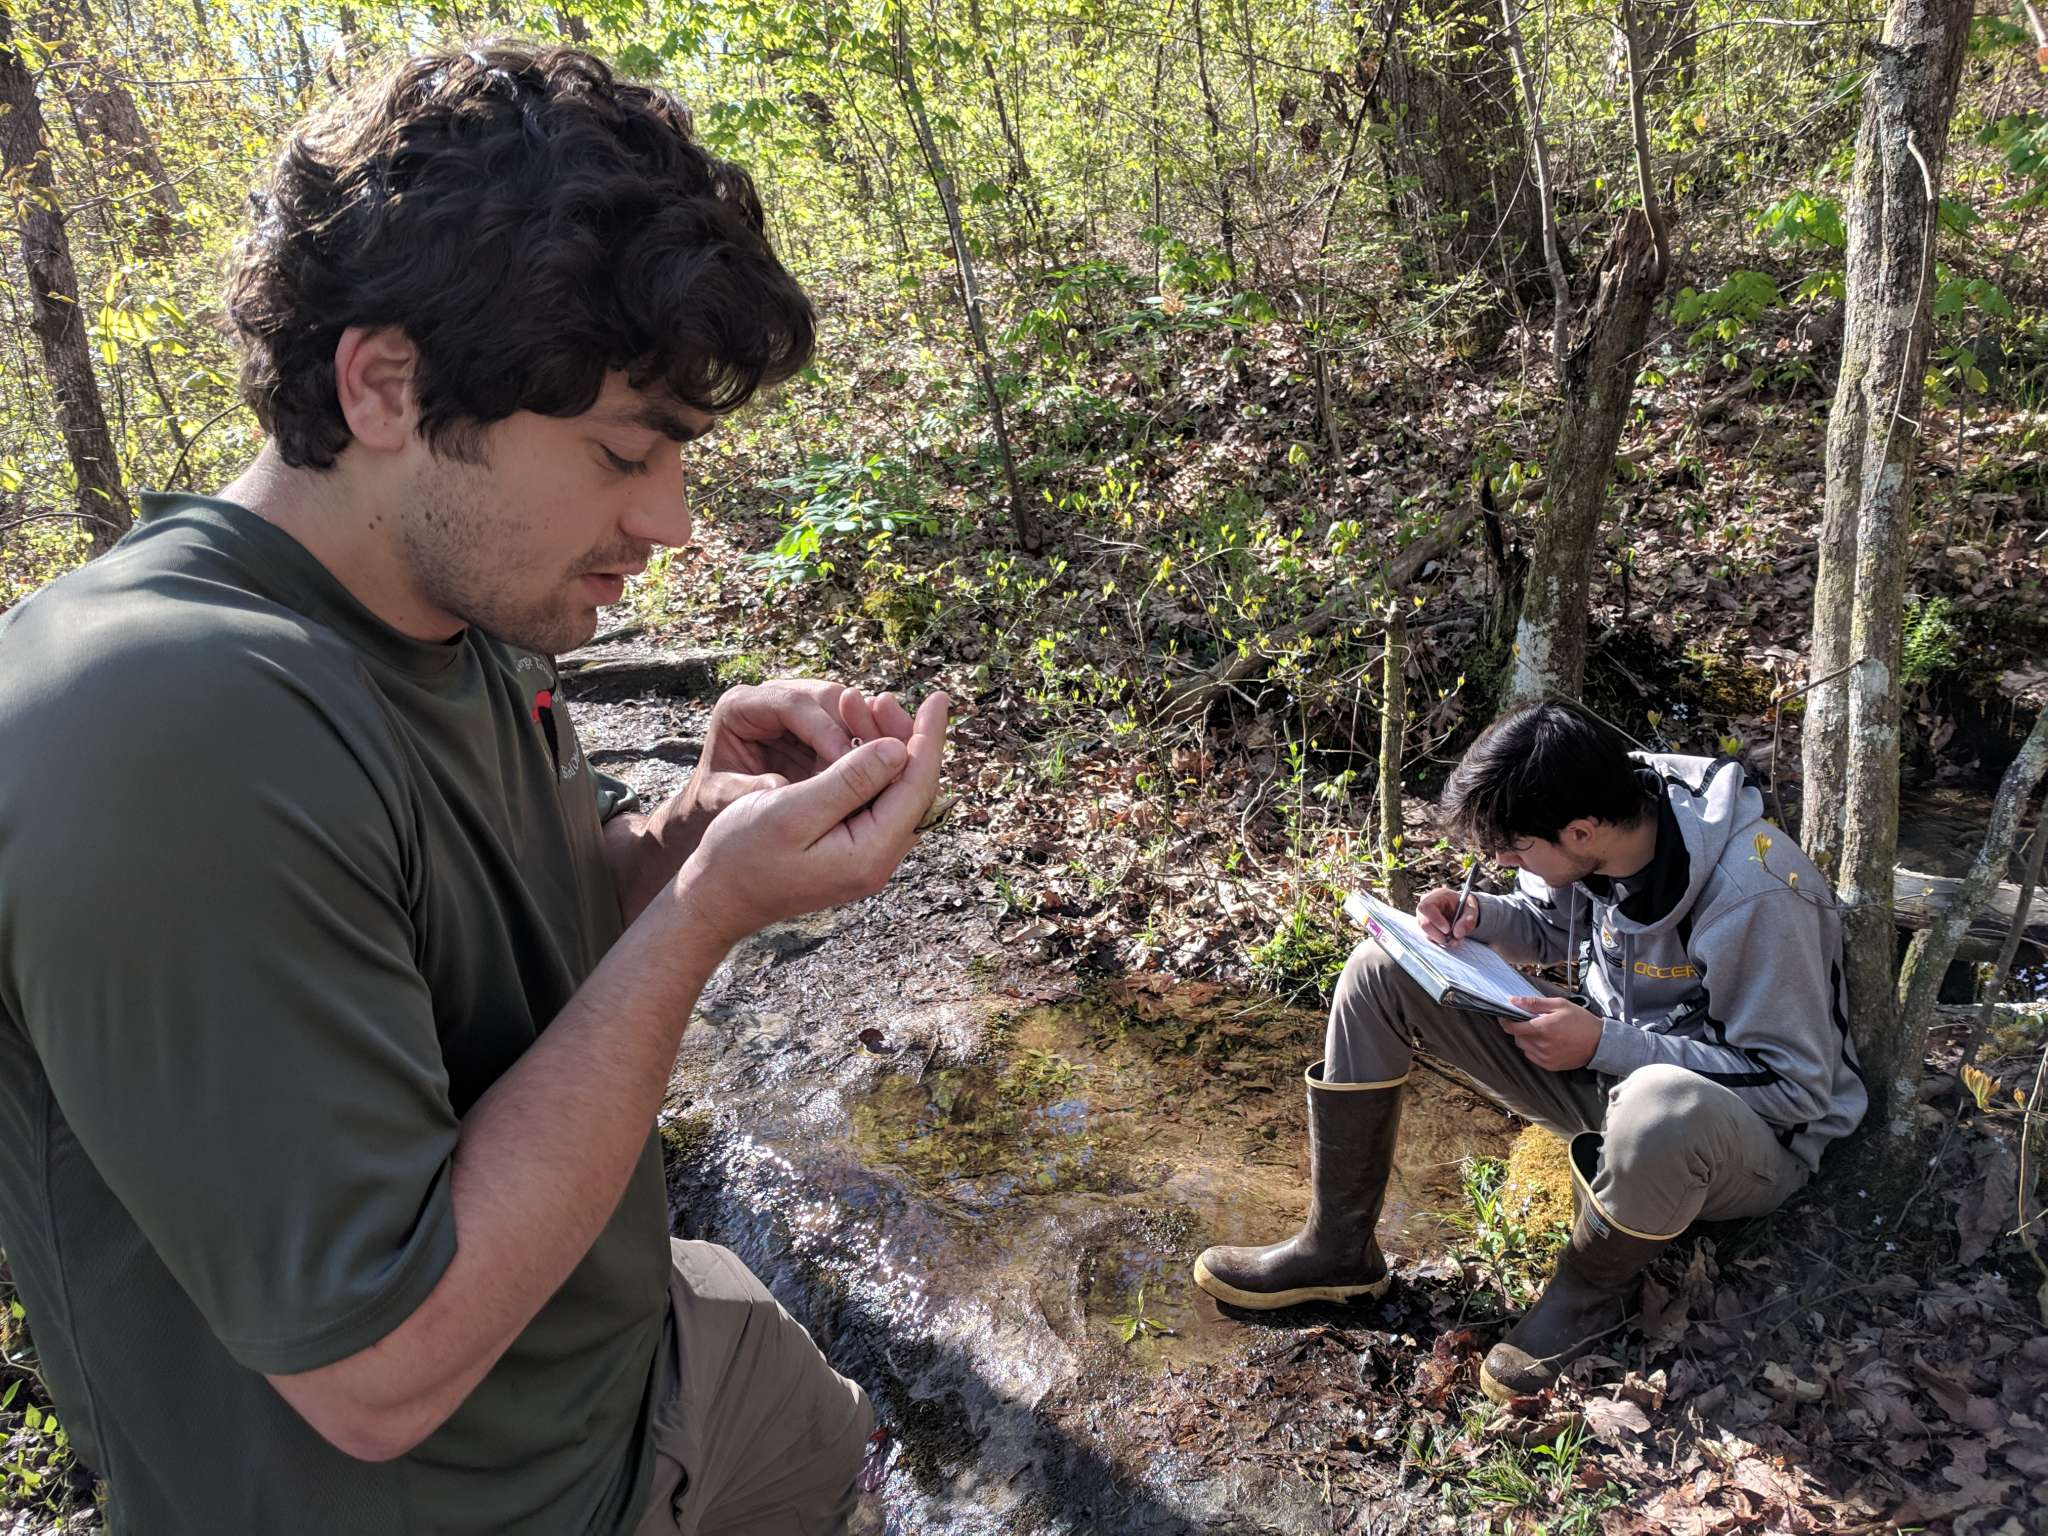 Two young wildlife biologists doing wildlife conservation field work by looking at samples by a river